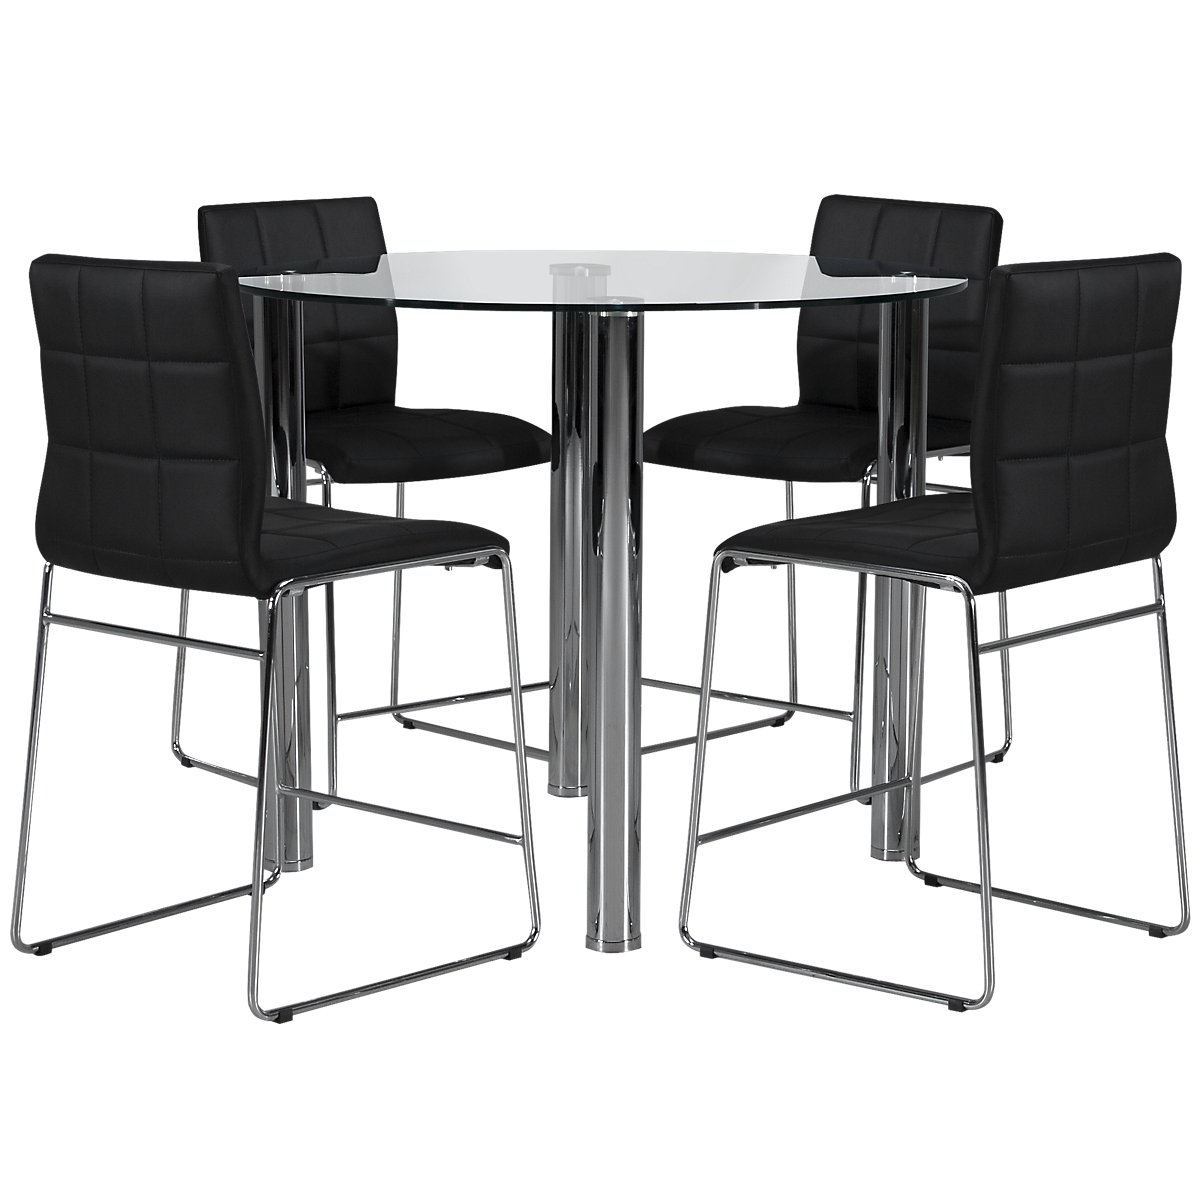 Napoli Black Round High Table & 4 Upholstered Barstools